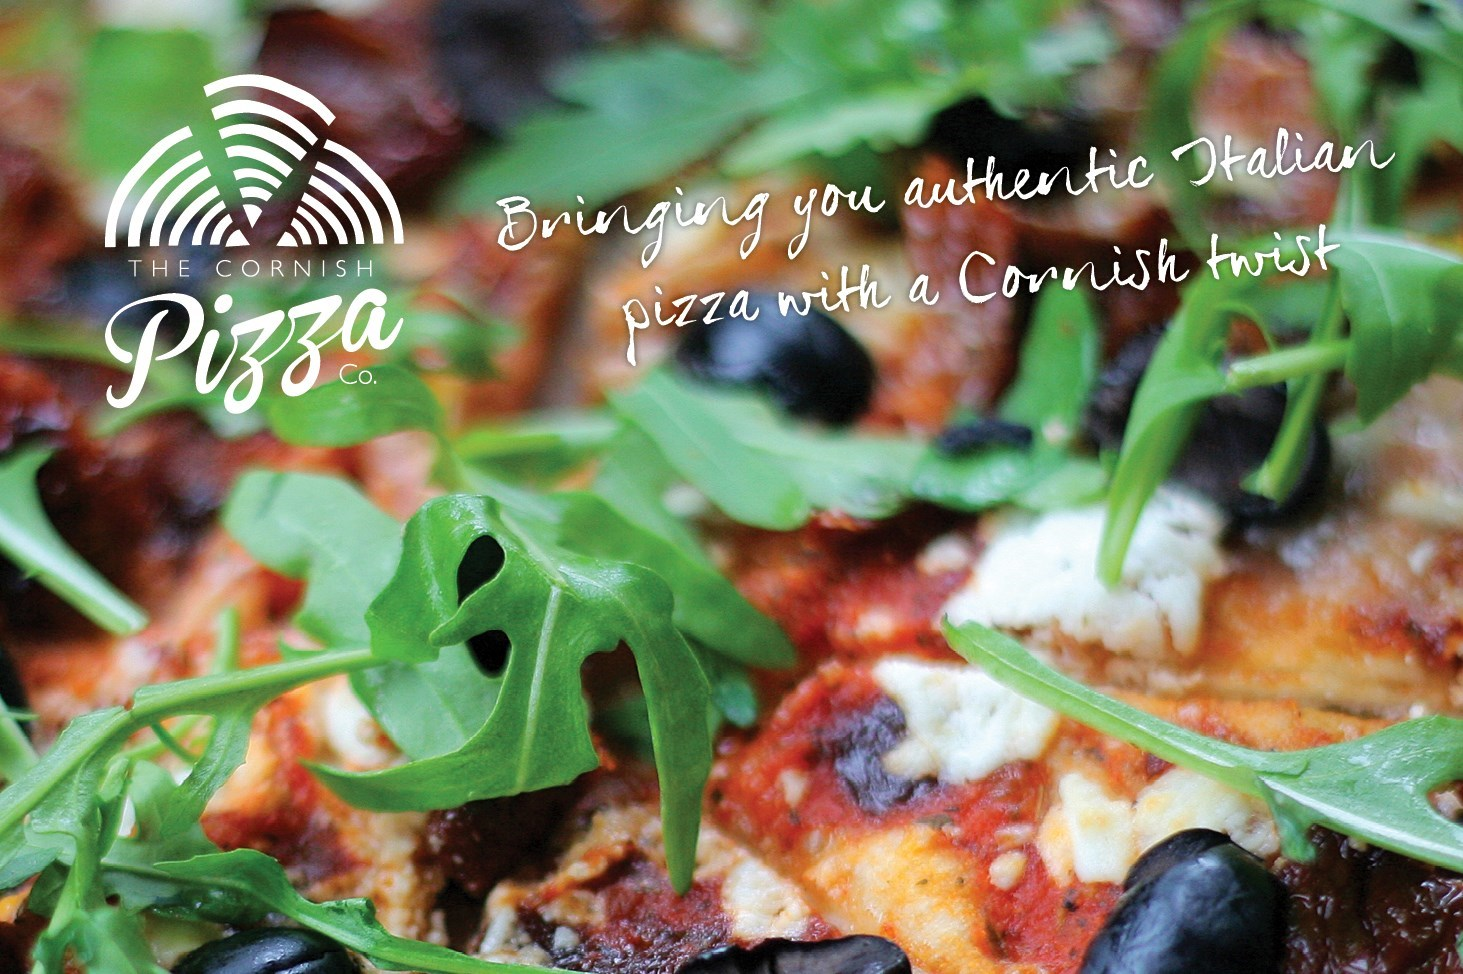 Image of Cornish Pizza Company St Agnes Cornwall fresh Pizza and Logo